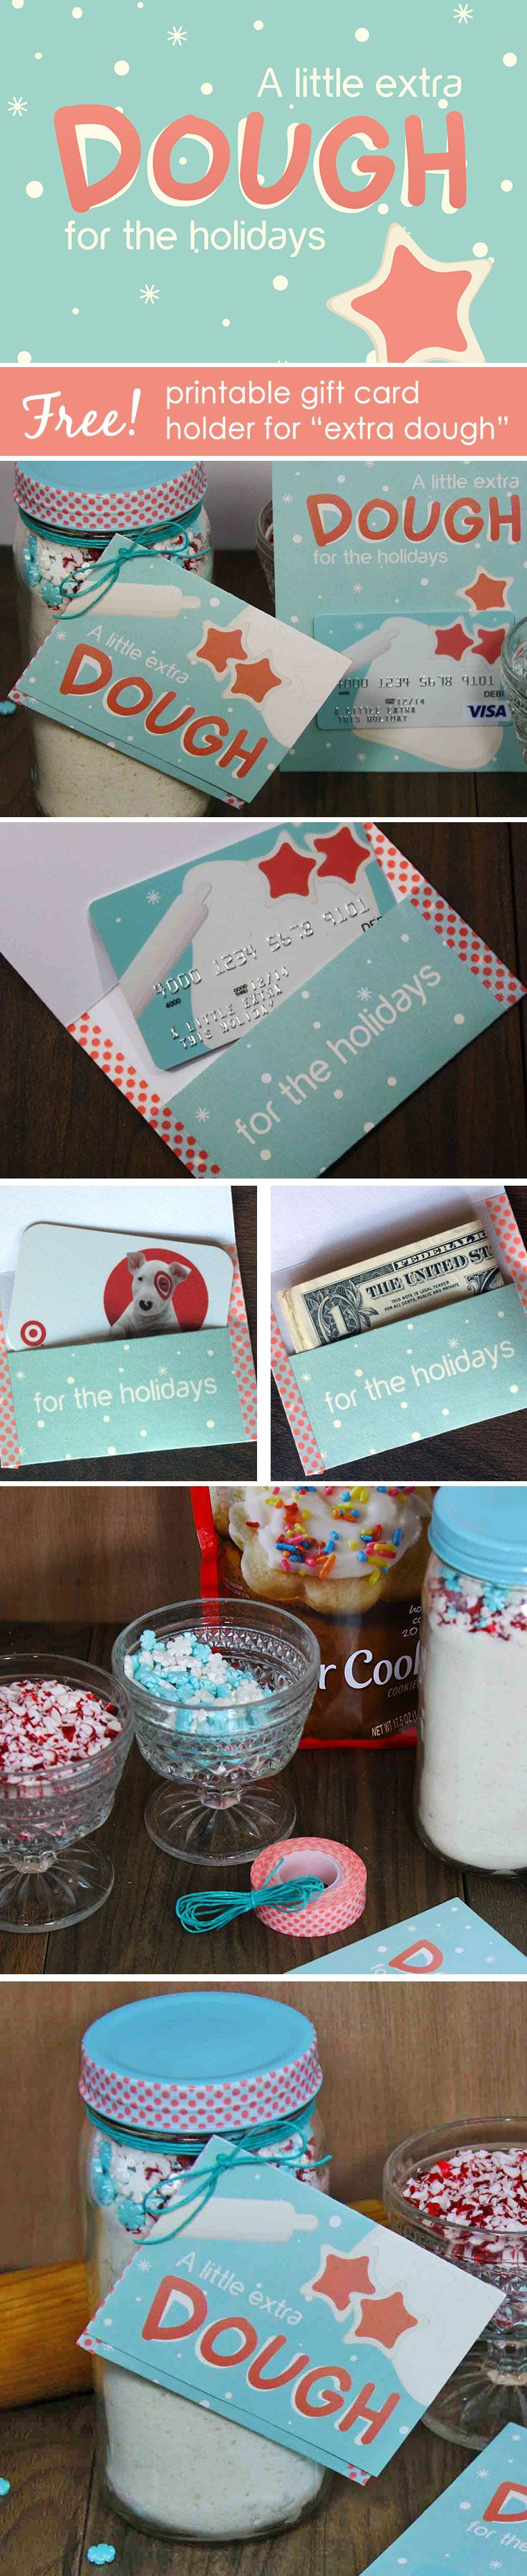 "Give someone a ""little extra dough"" (and save some of your own) this holiday season with a free printable gift card holder."